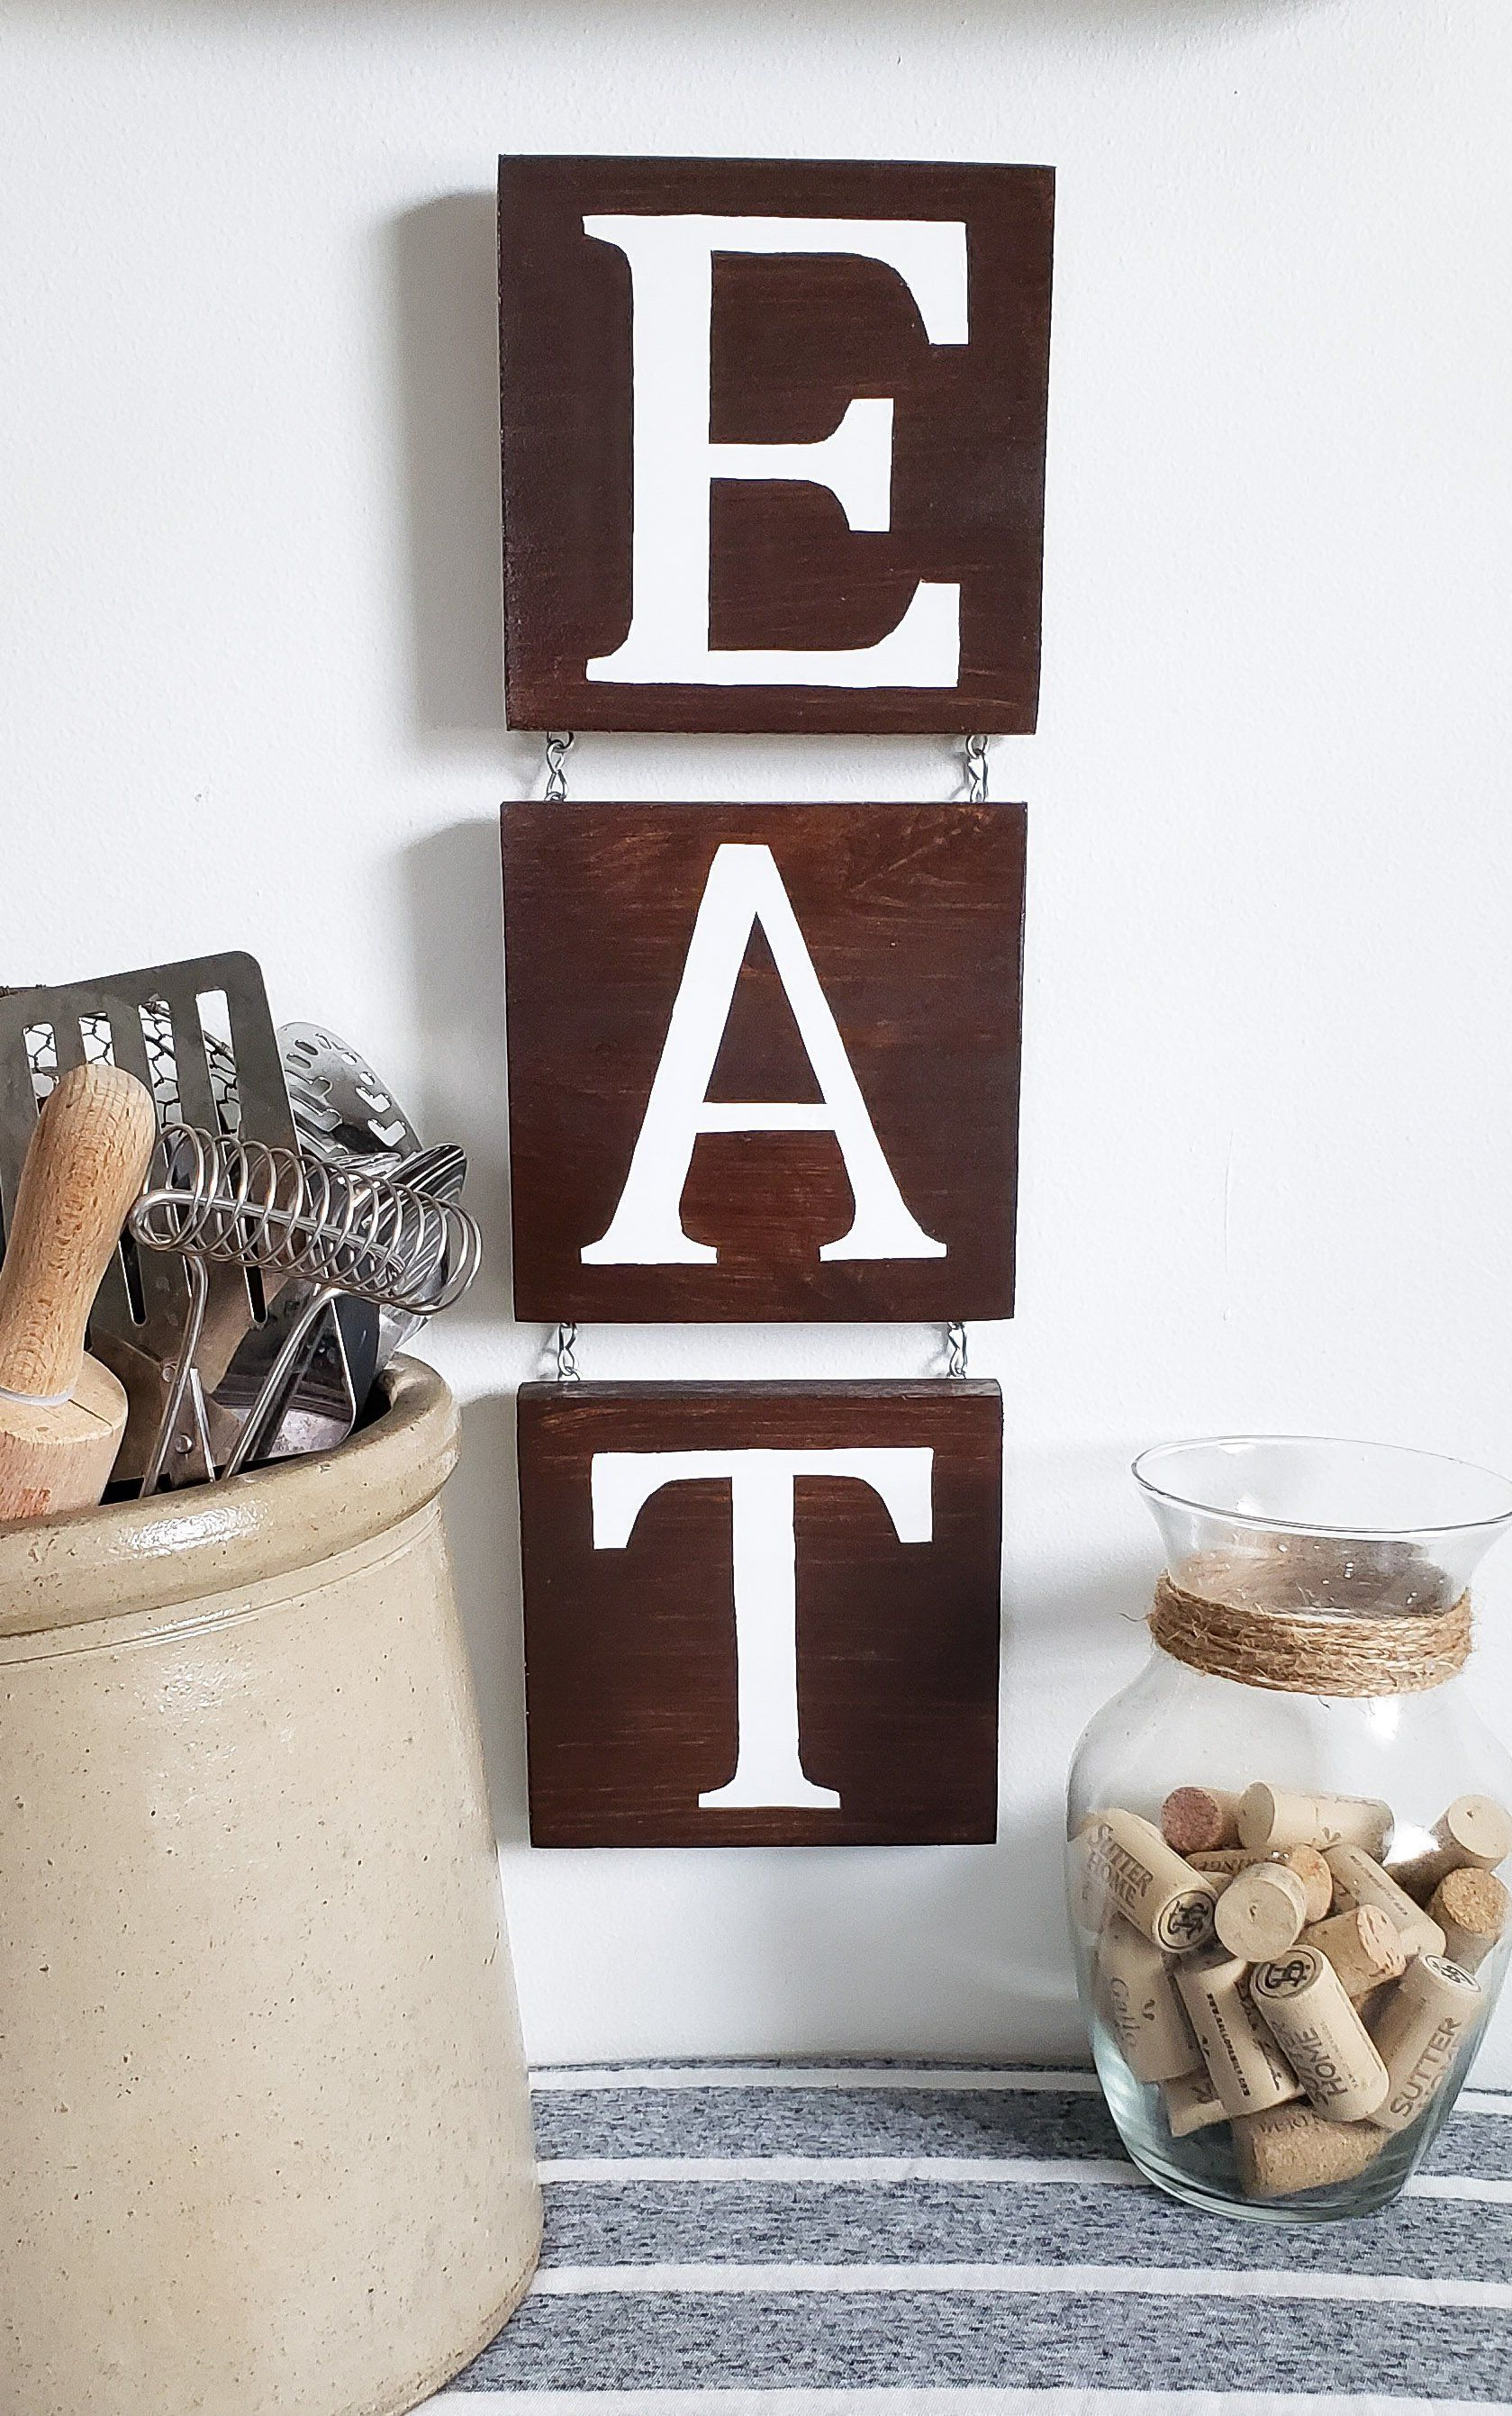 Eat Sign Kitchen Sign Kitchen Decor Wooden E A T Sign Wall Hanging Vertical Eat Sign Dining R Dining Room Wall Decor Wooden Kitchen Signs Room Wall Decor